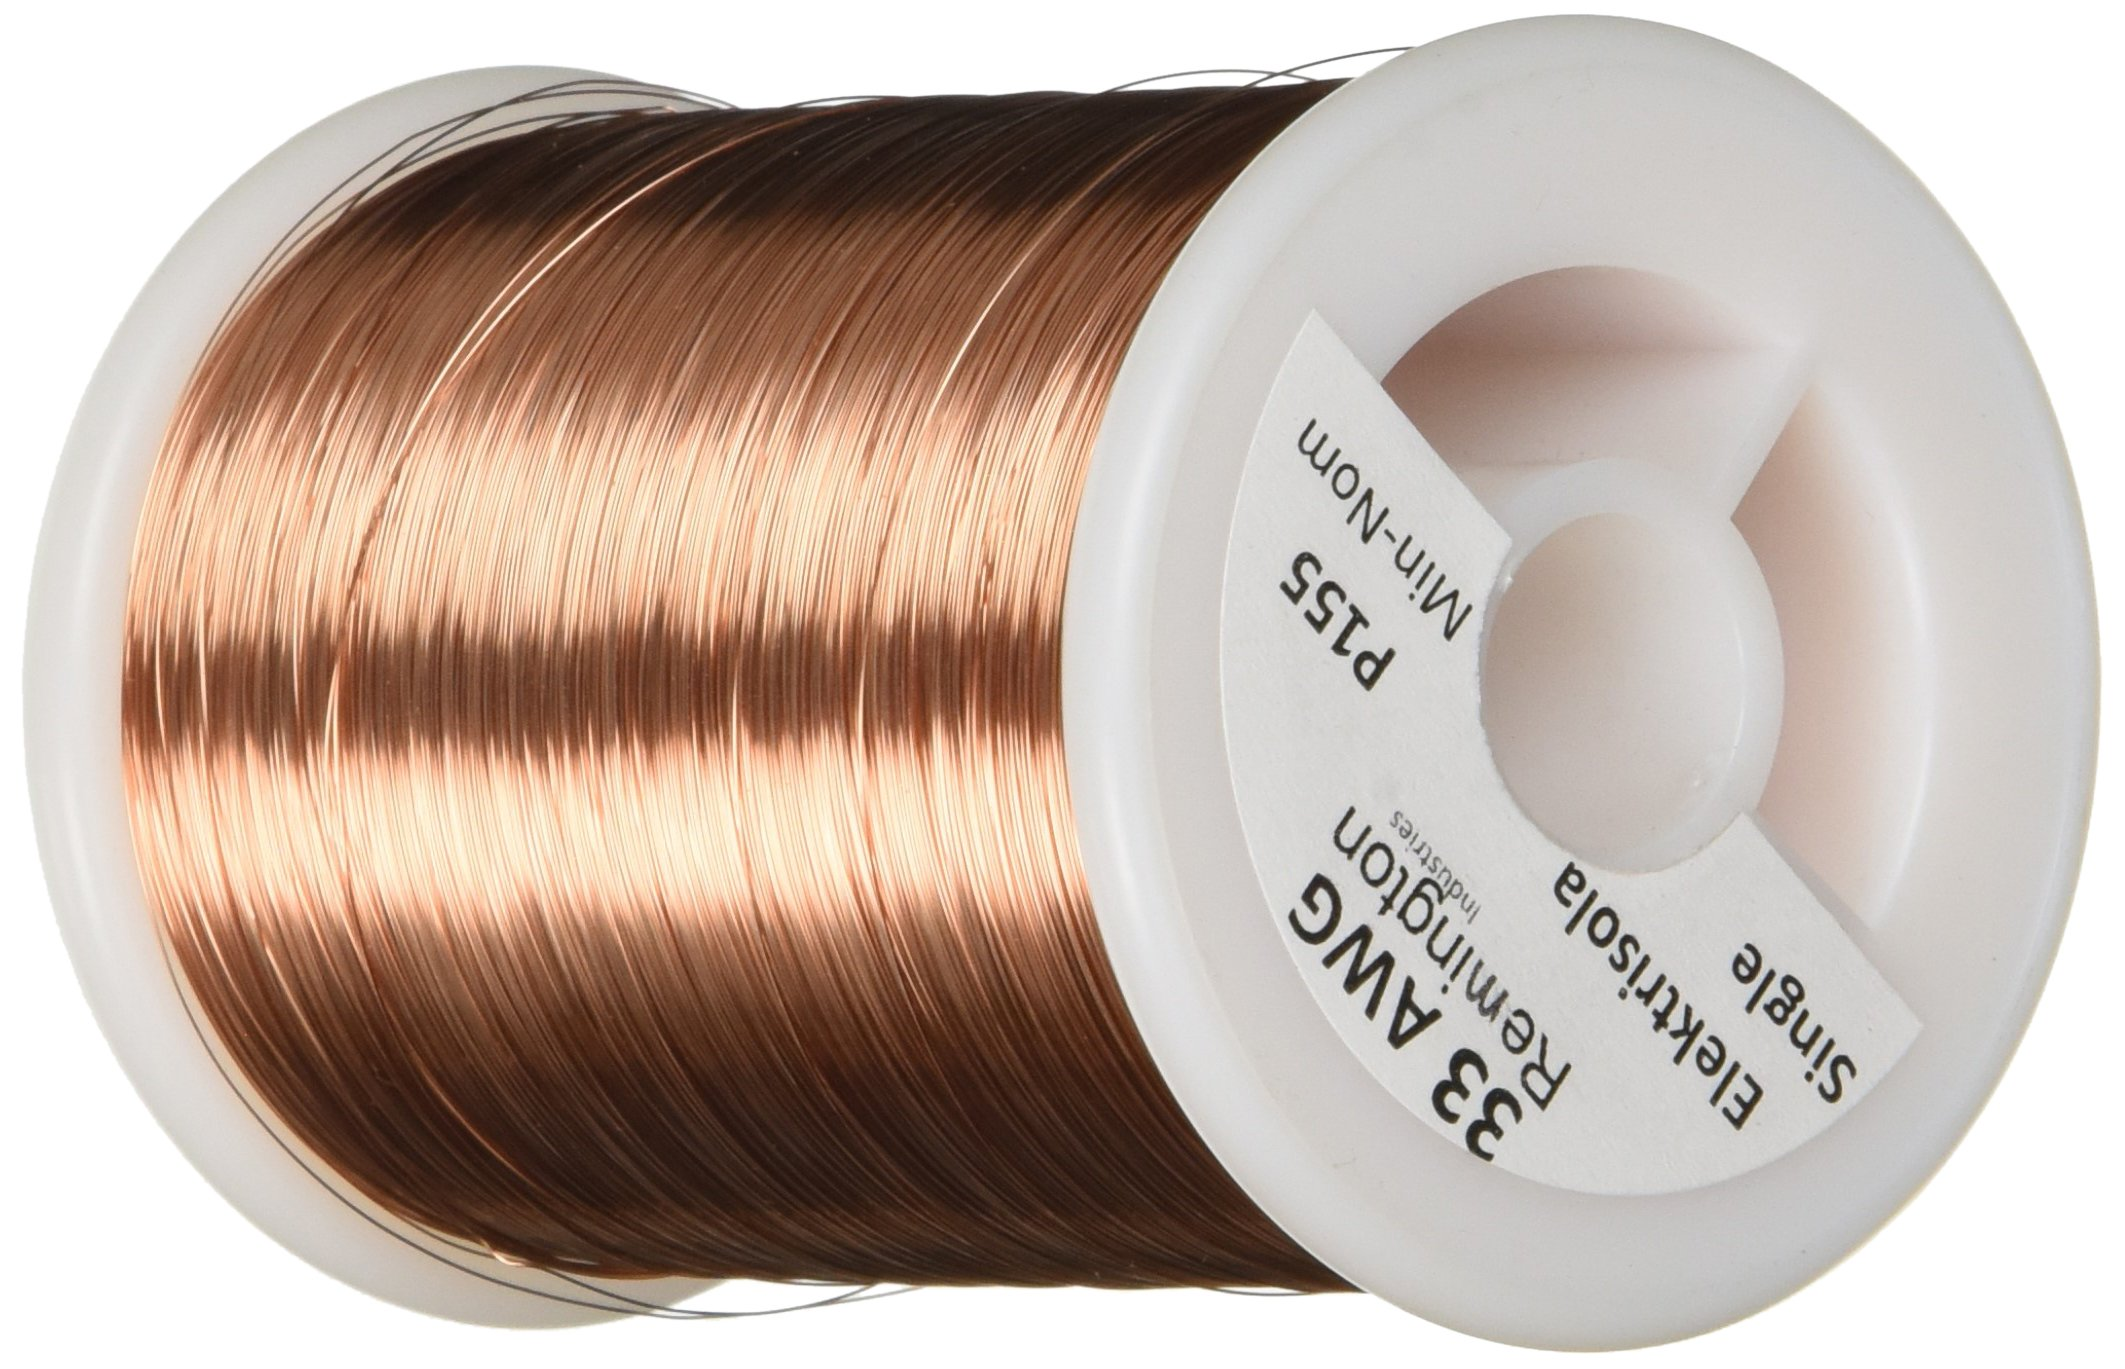 Remington Industries 33SNSP 33 AWG Magnet Wire, Enameled Copper Wire, 1.0 lb, 0.0077'' Diameter, 6352' Length, Natural